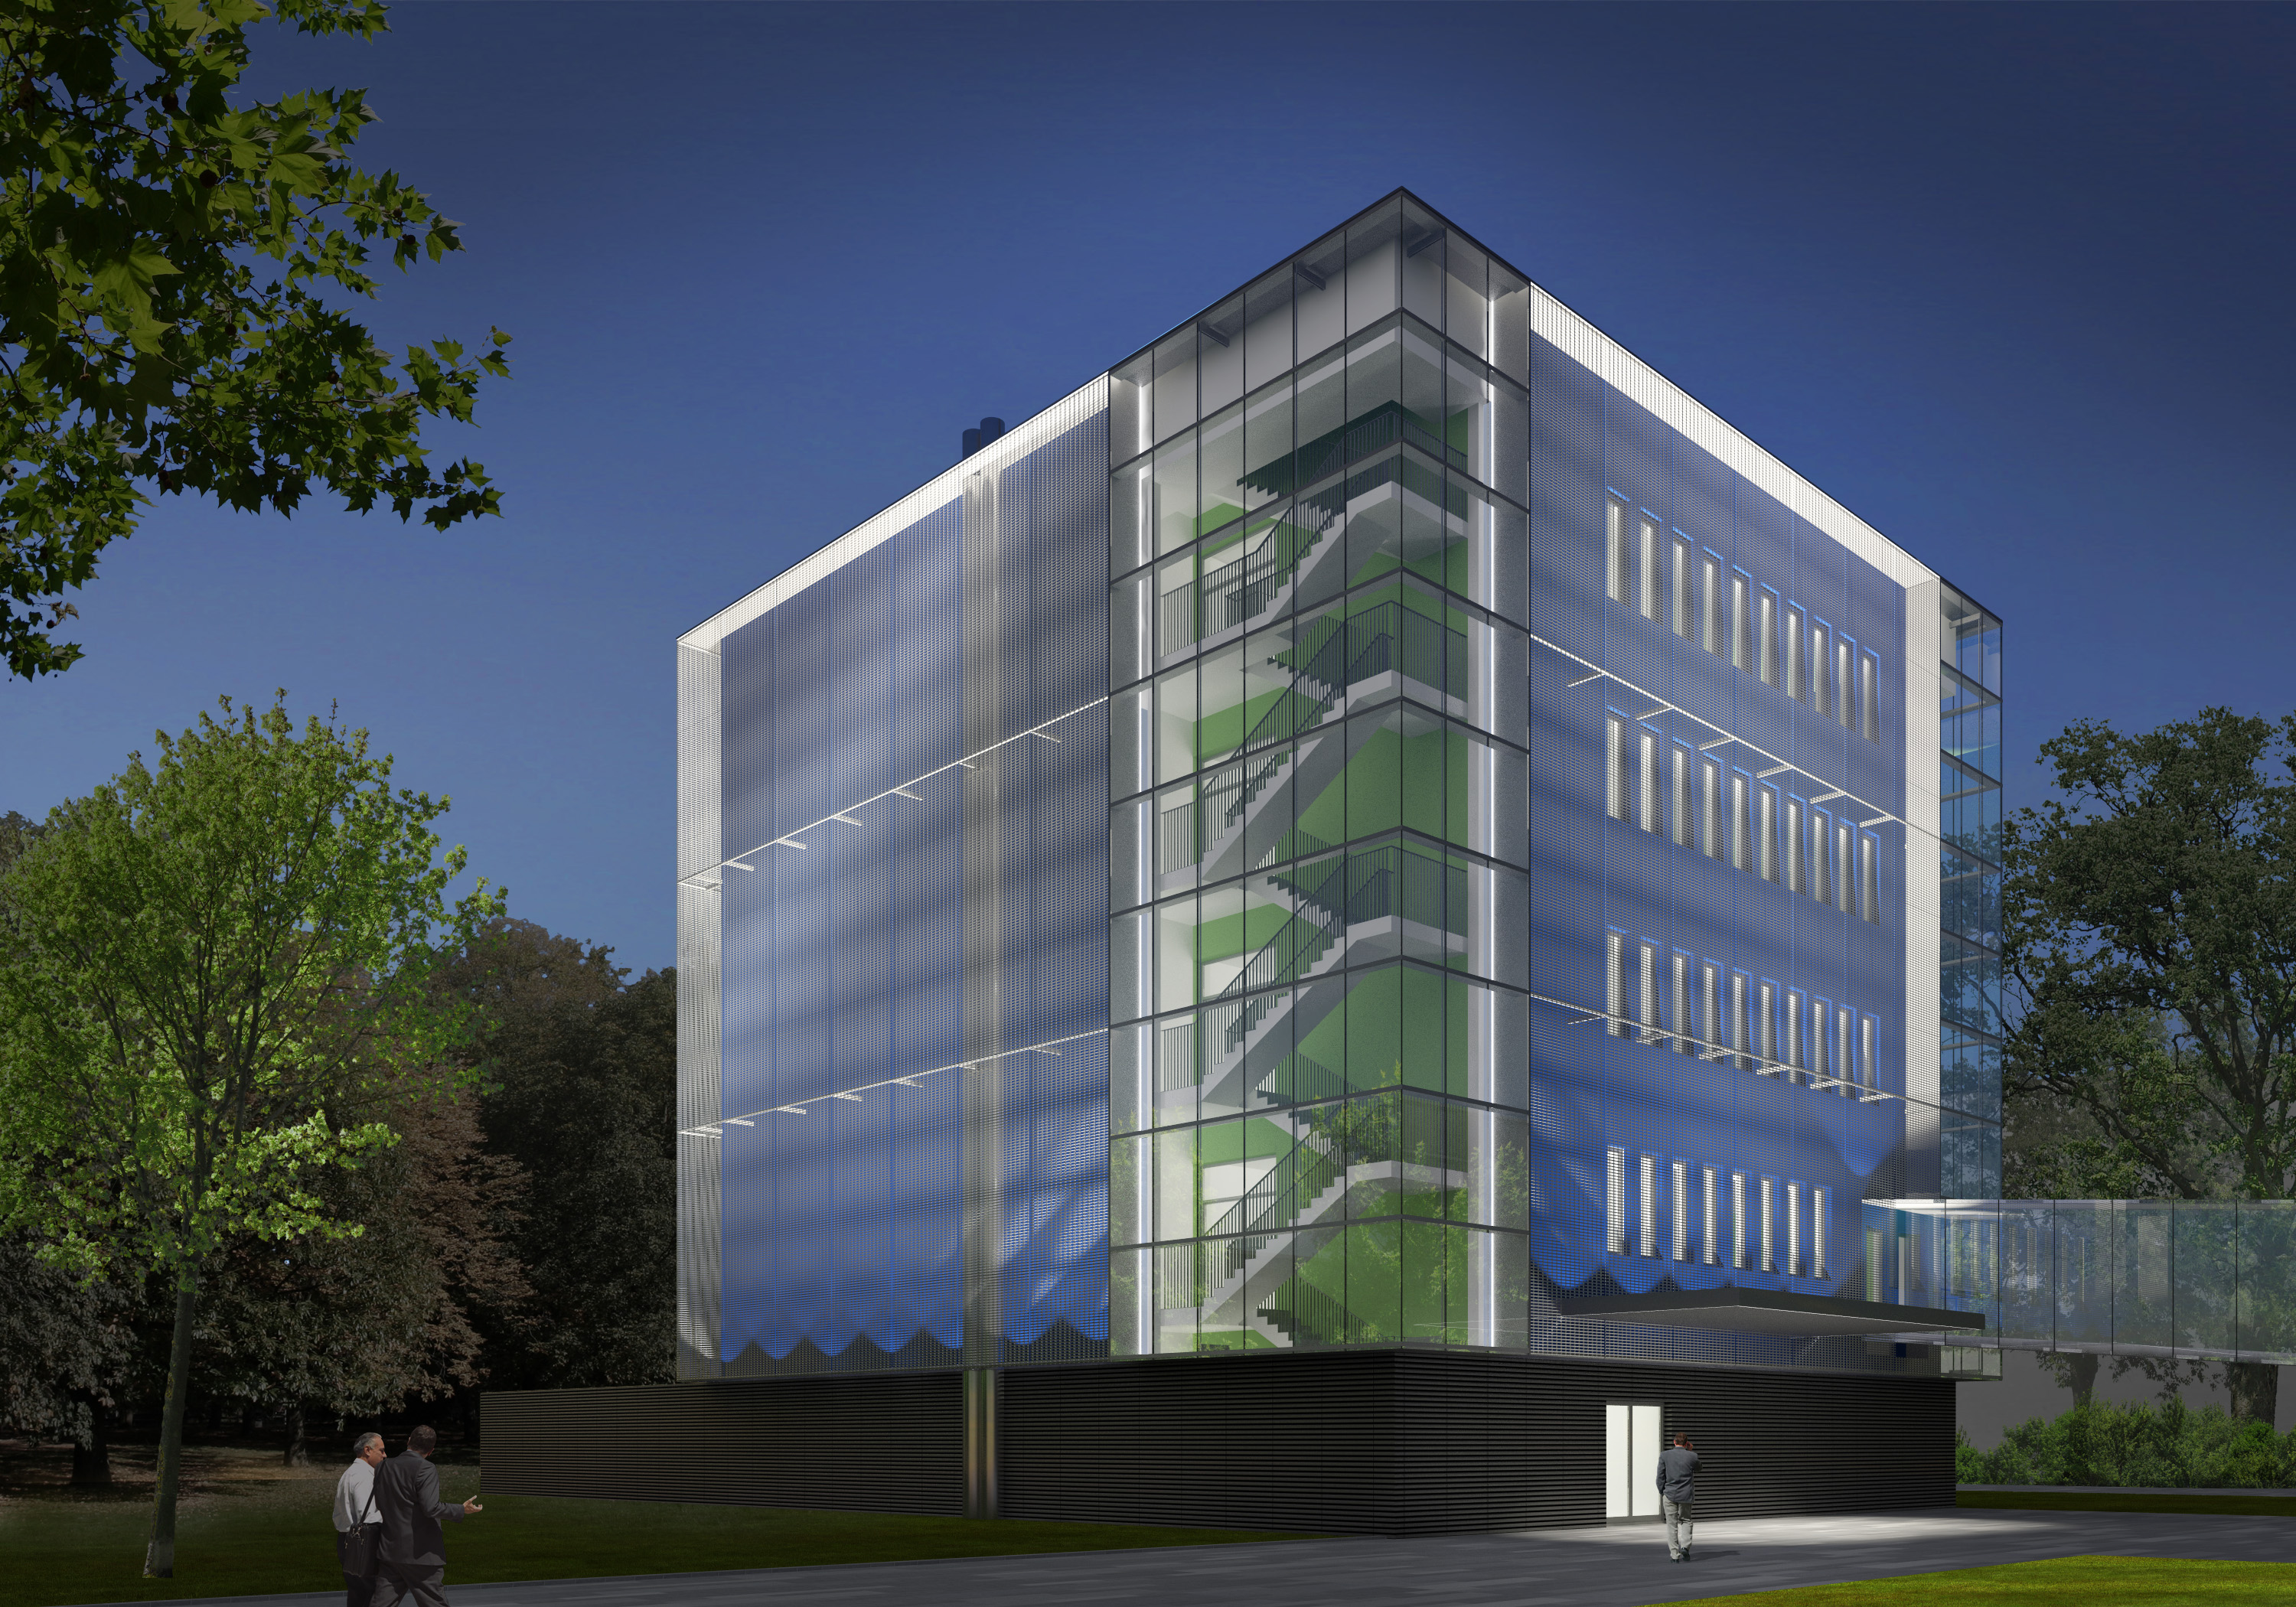 Artist's impression of the New Infrastructure Building